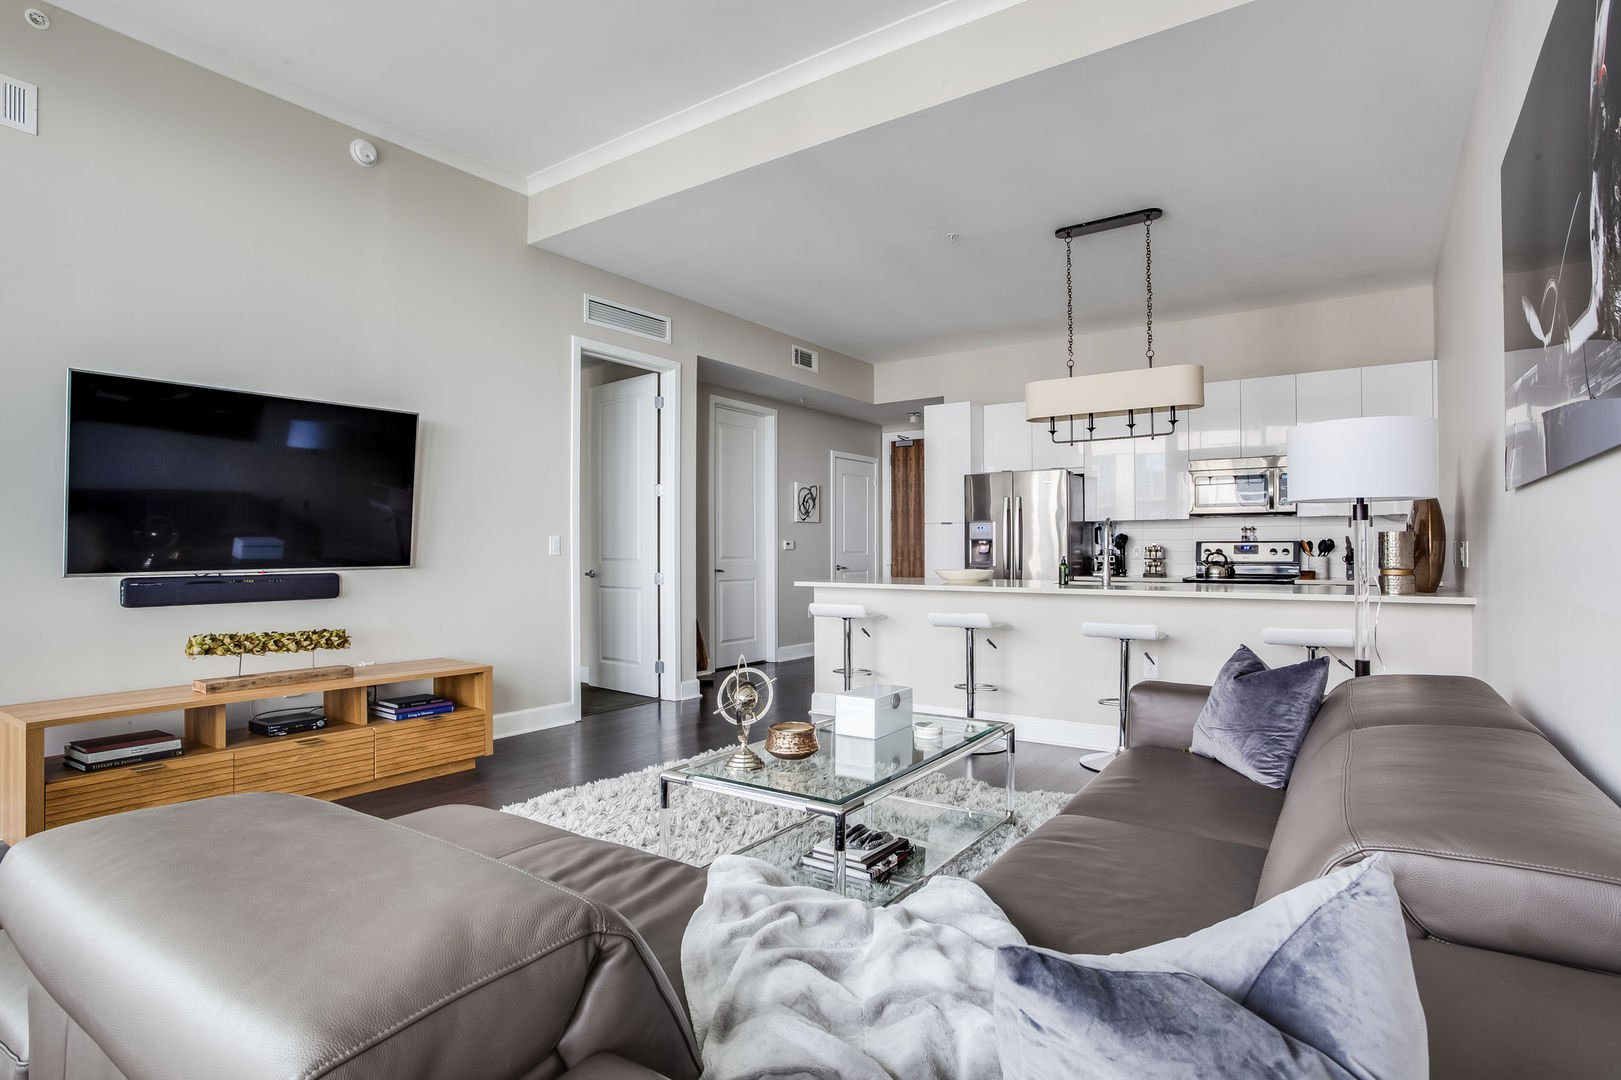 Living area with views of TV and kitchen